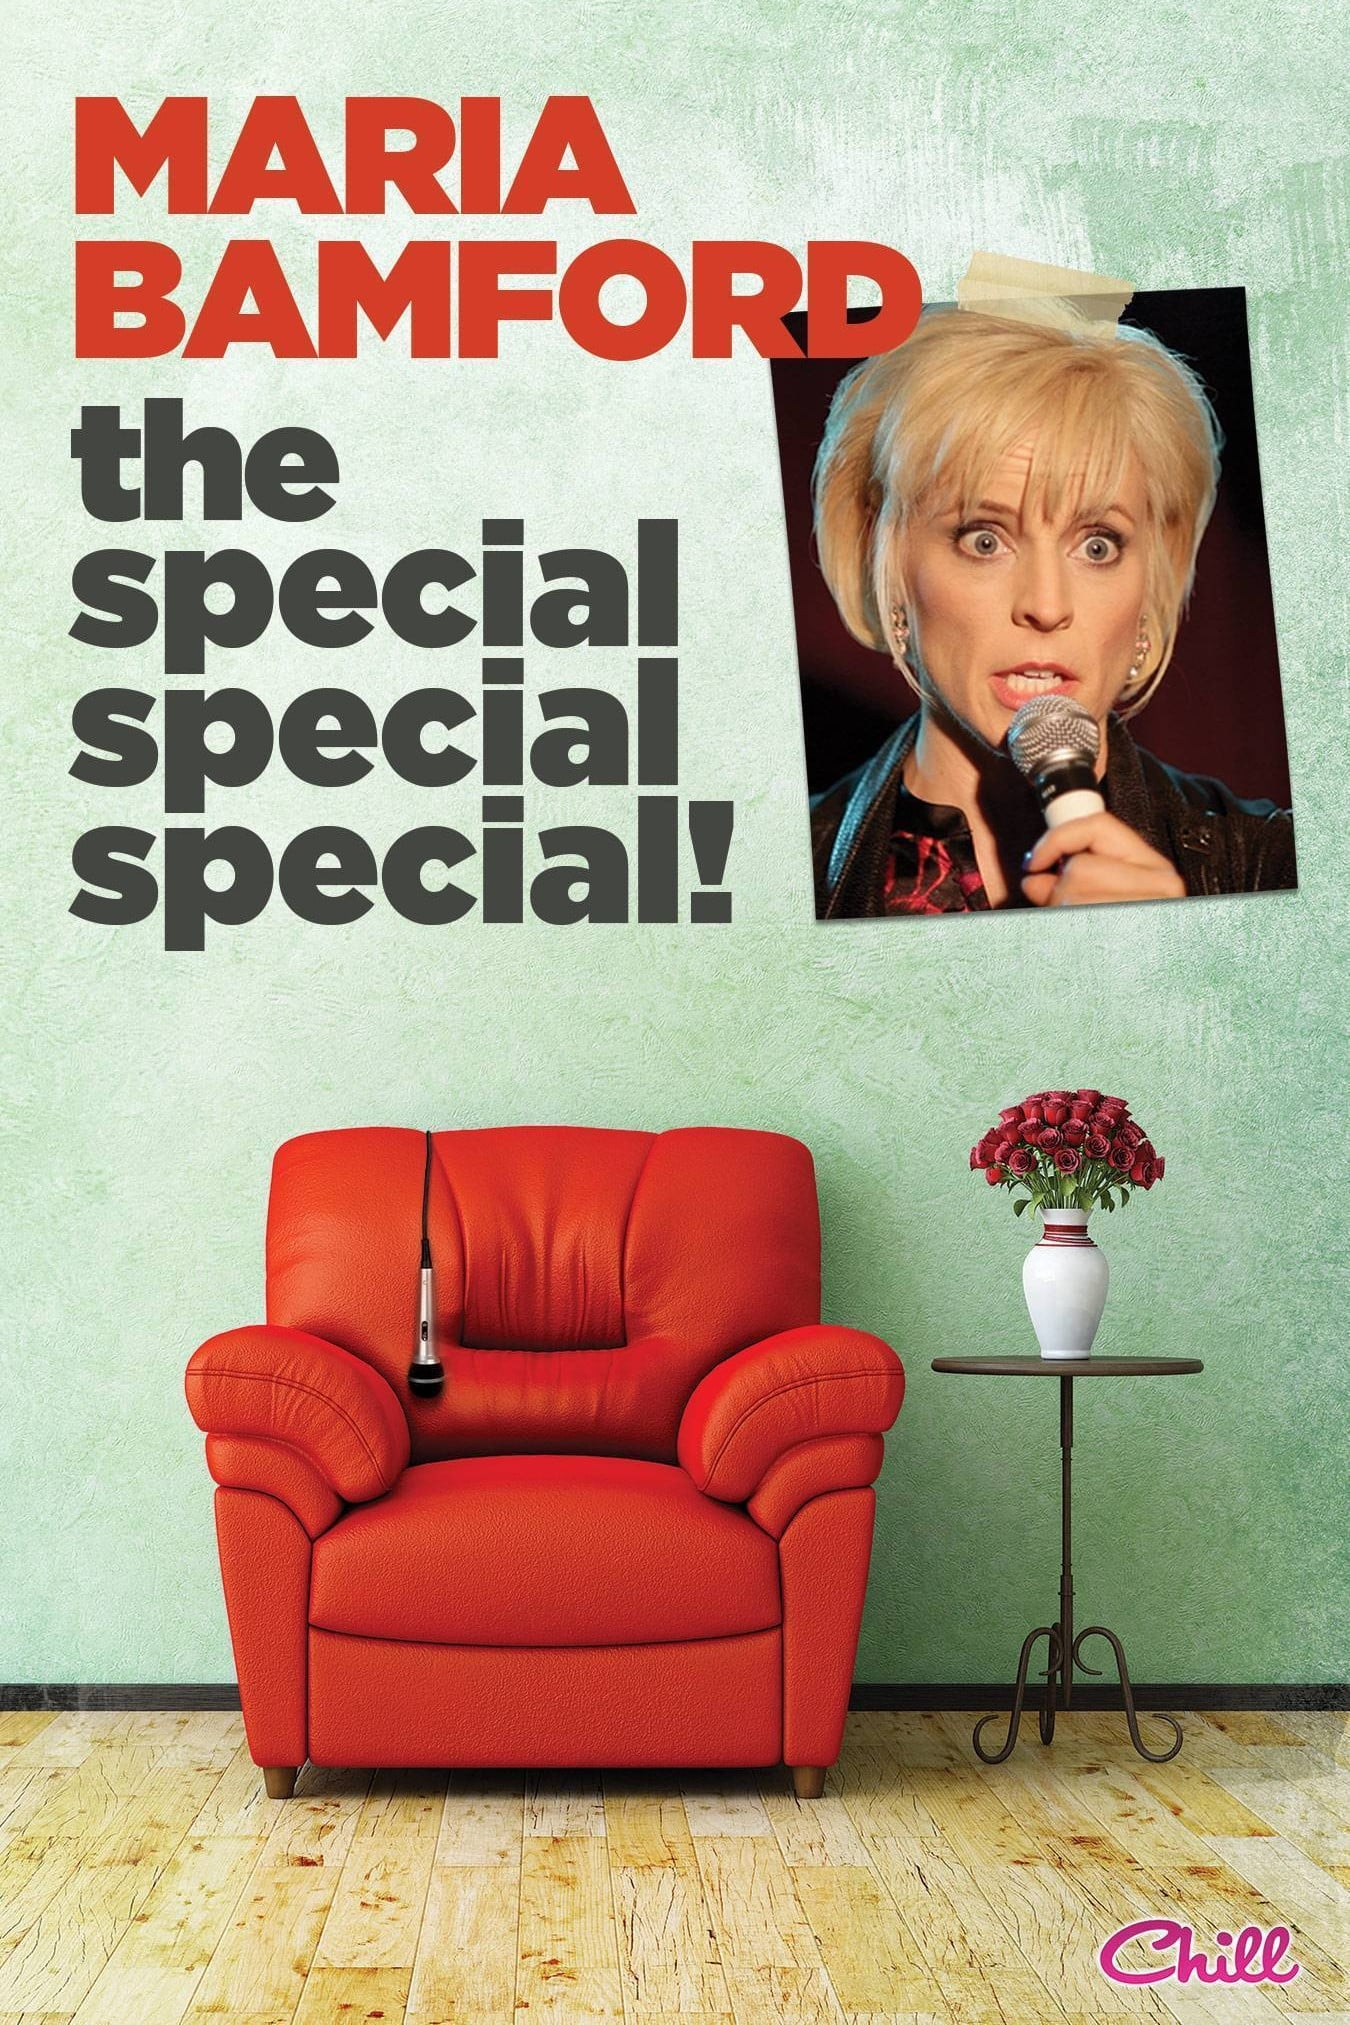 watch Maria Bamford: The Special Special Special! 2012 Stream online free